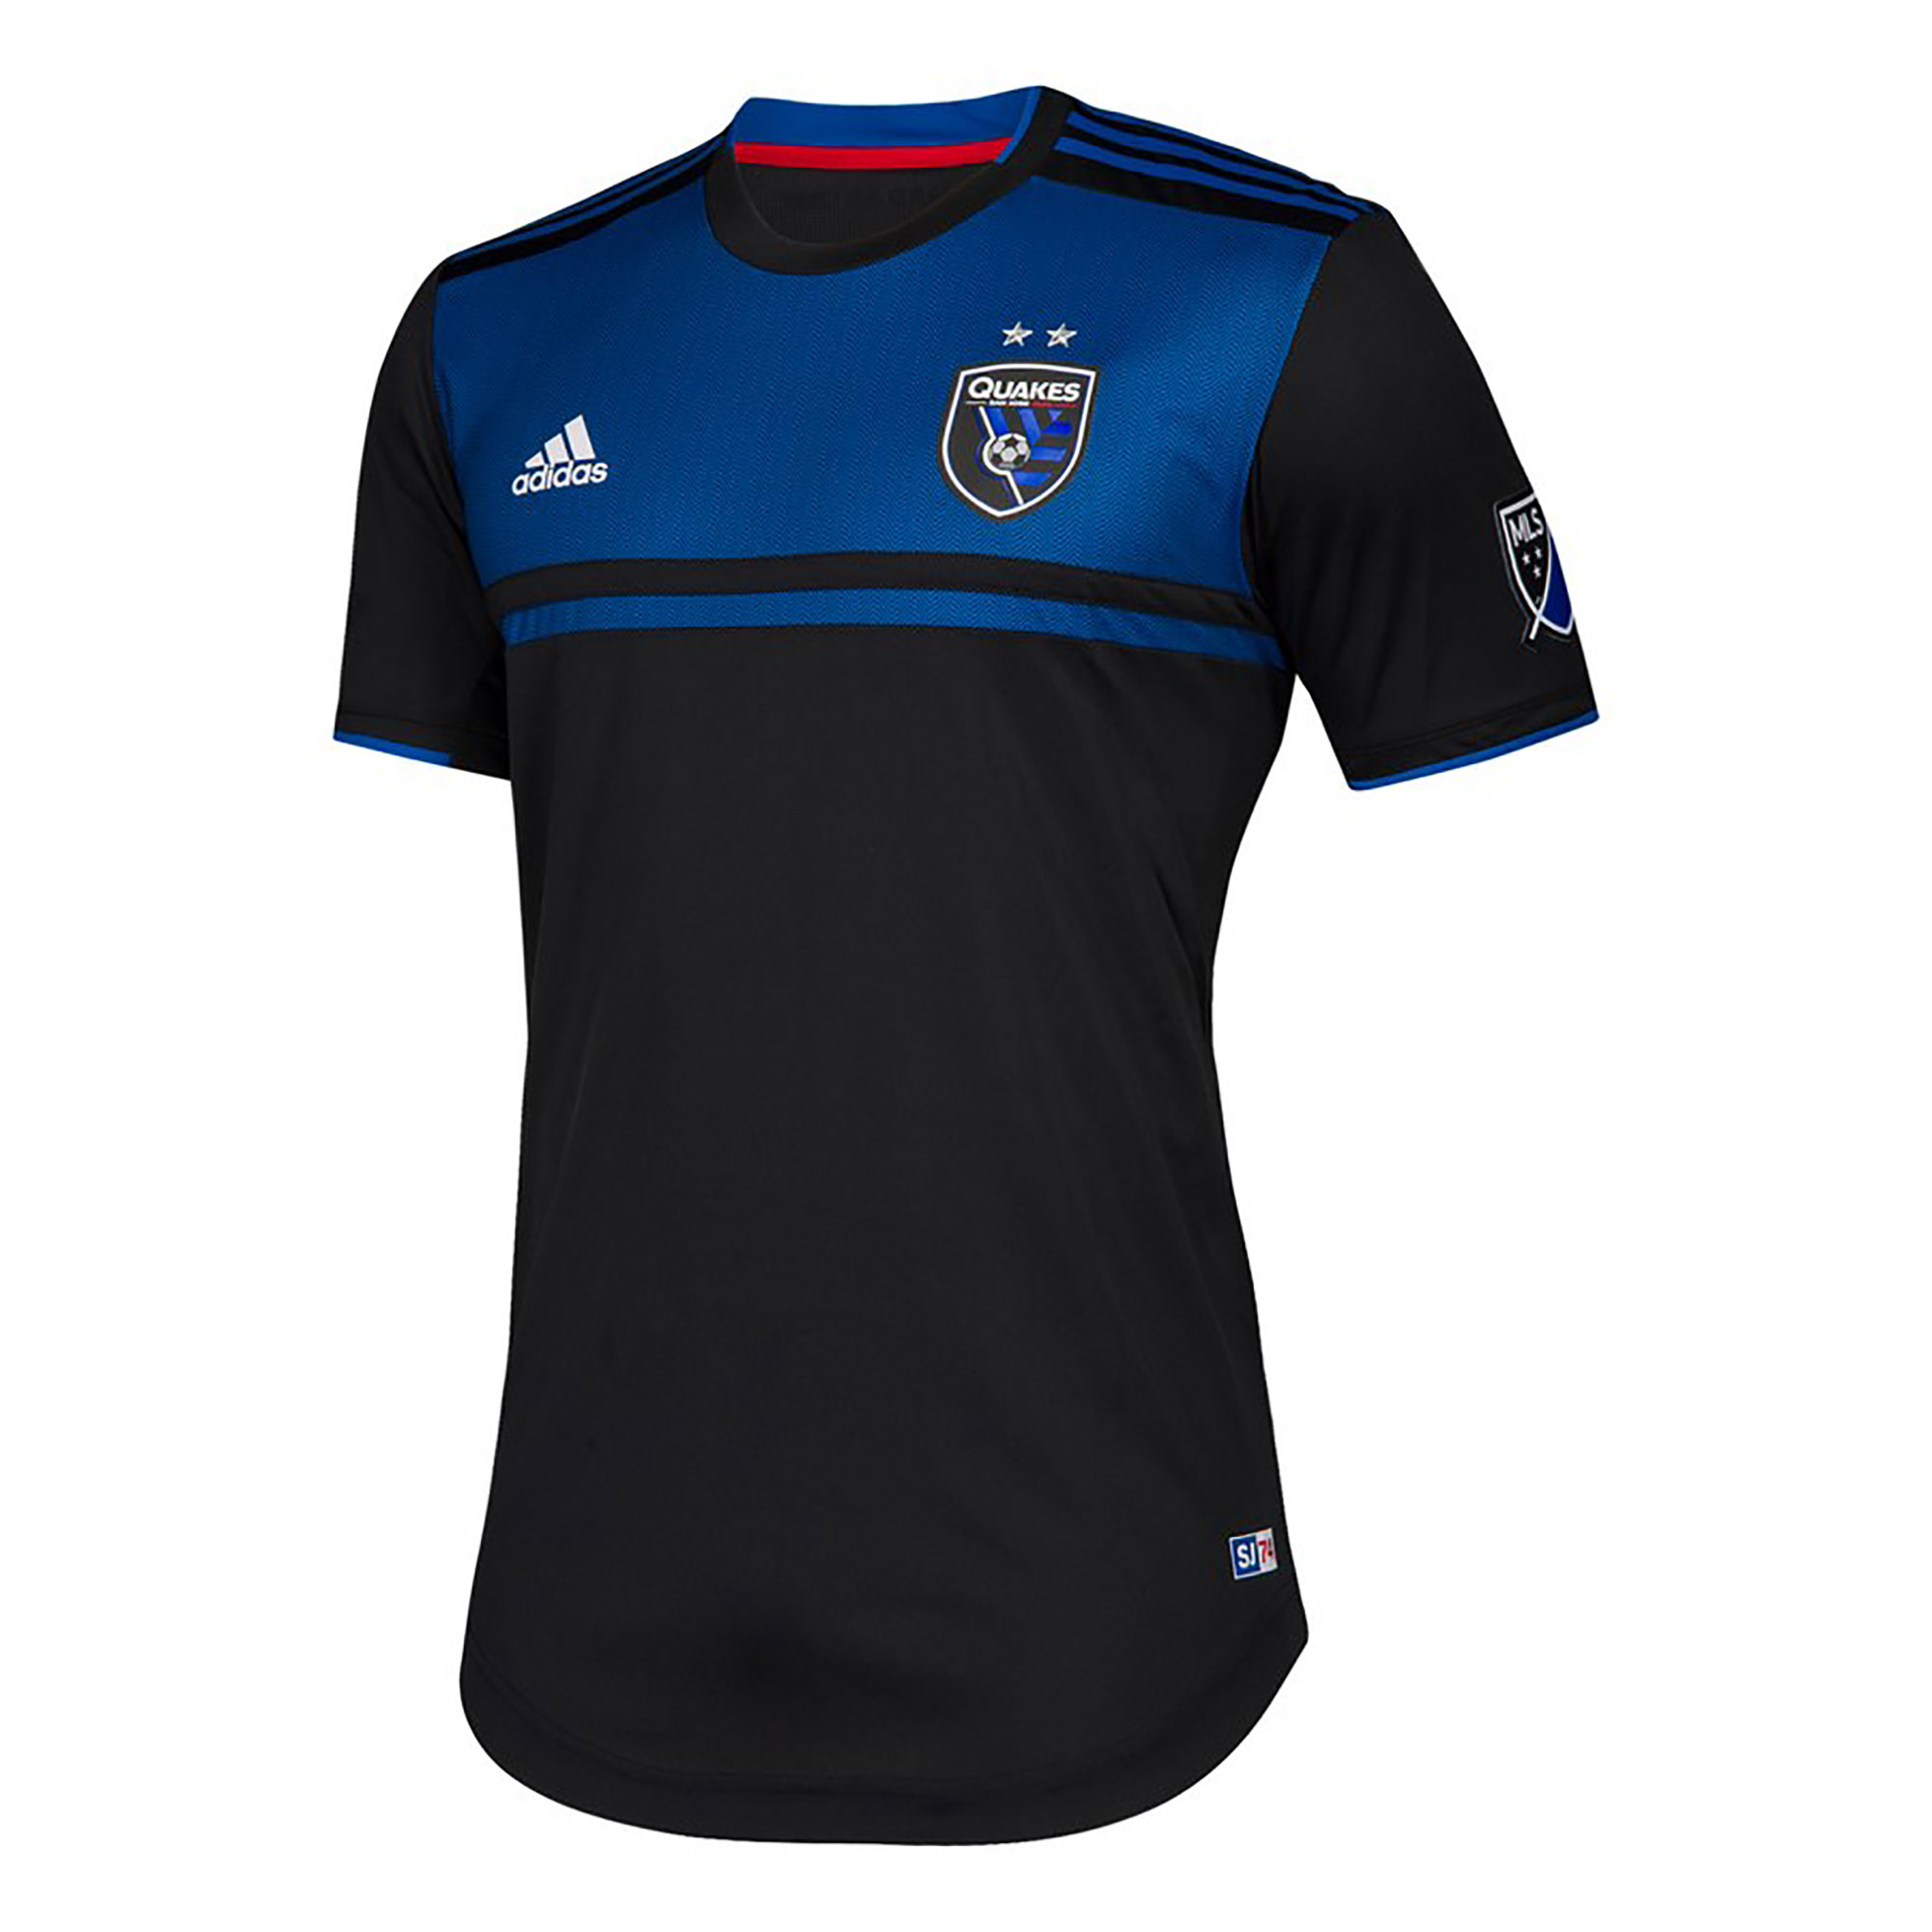 San Jose Earthquakes Lain-lain baju